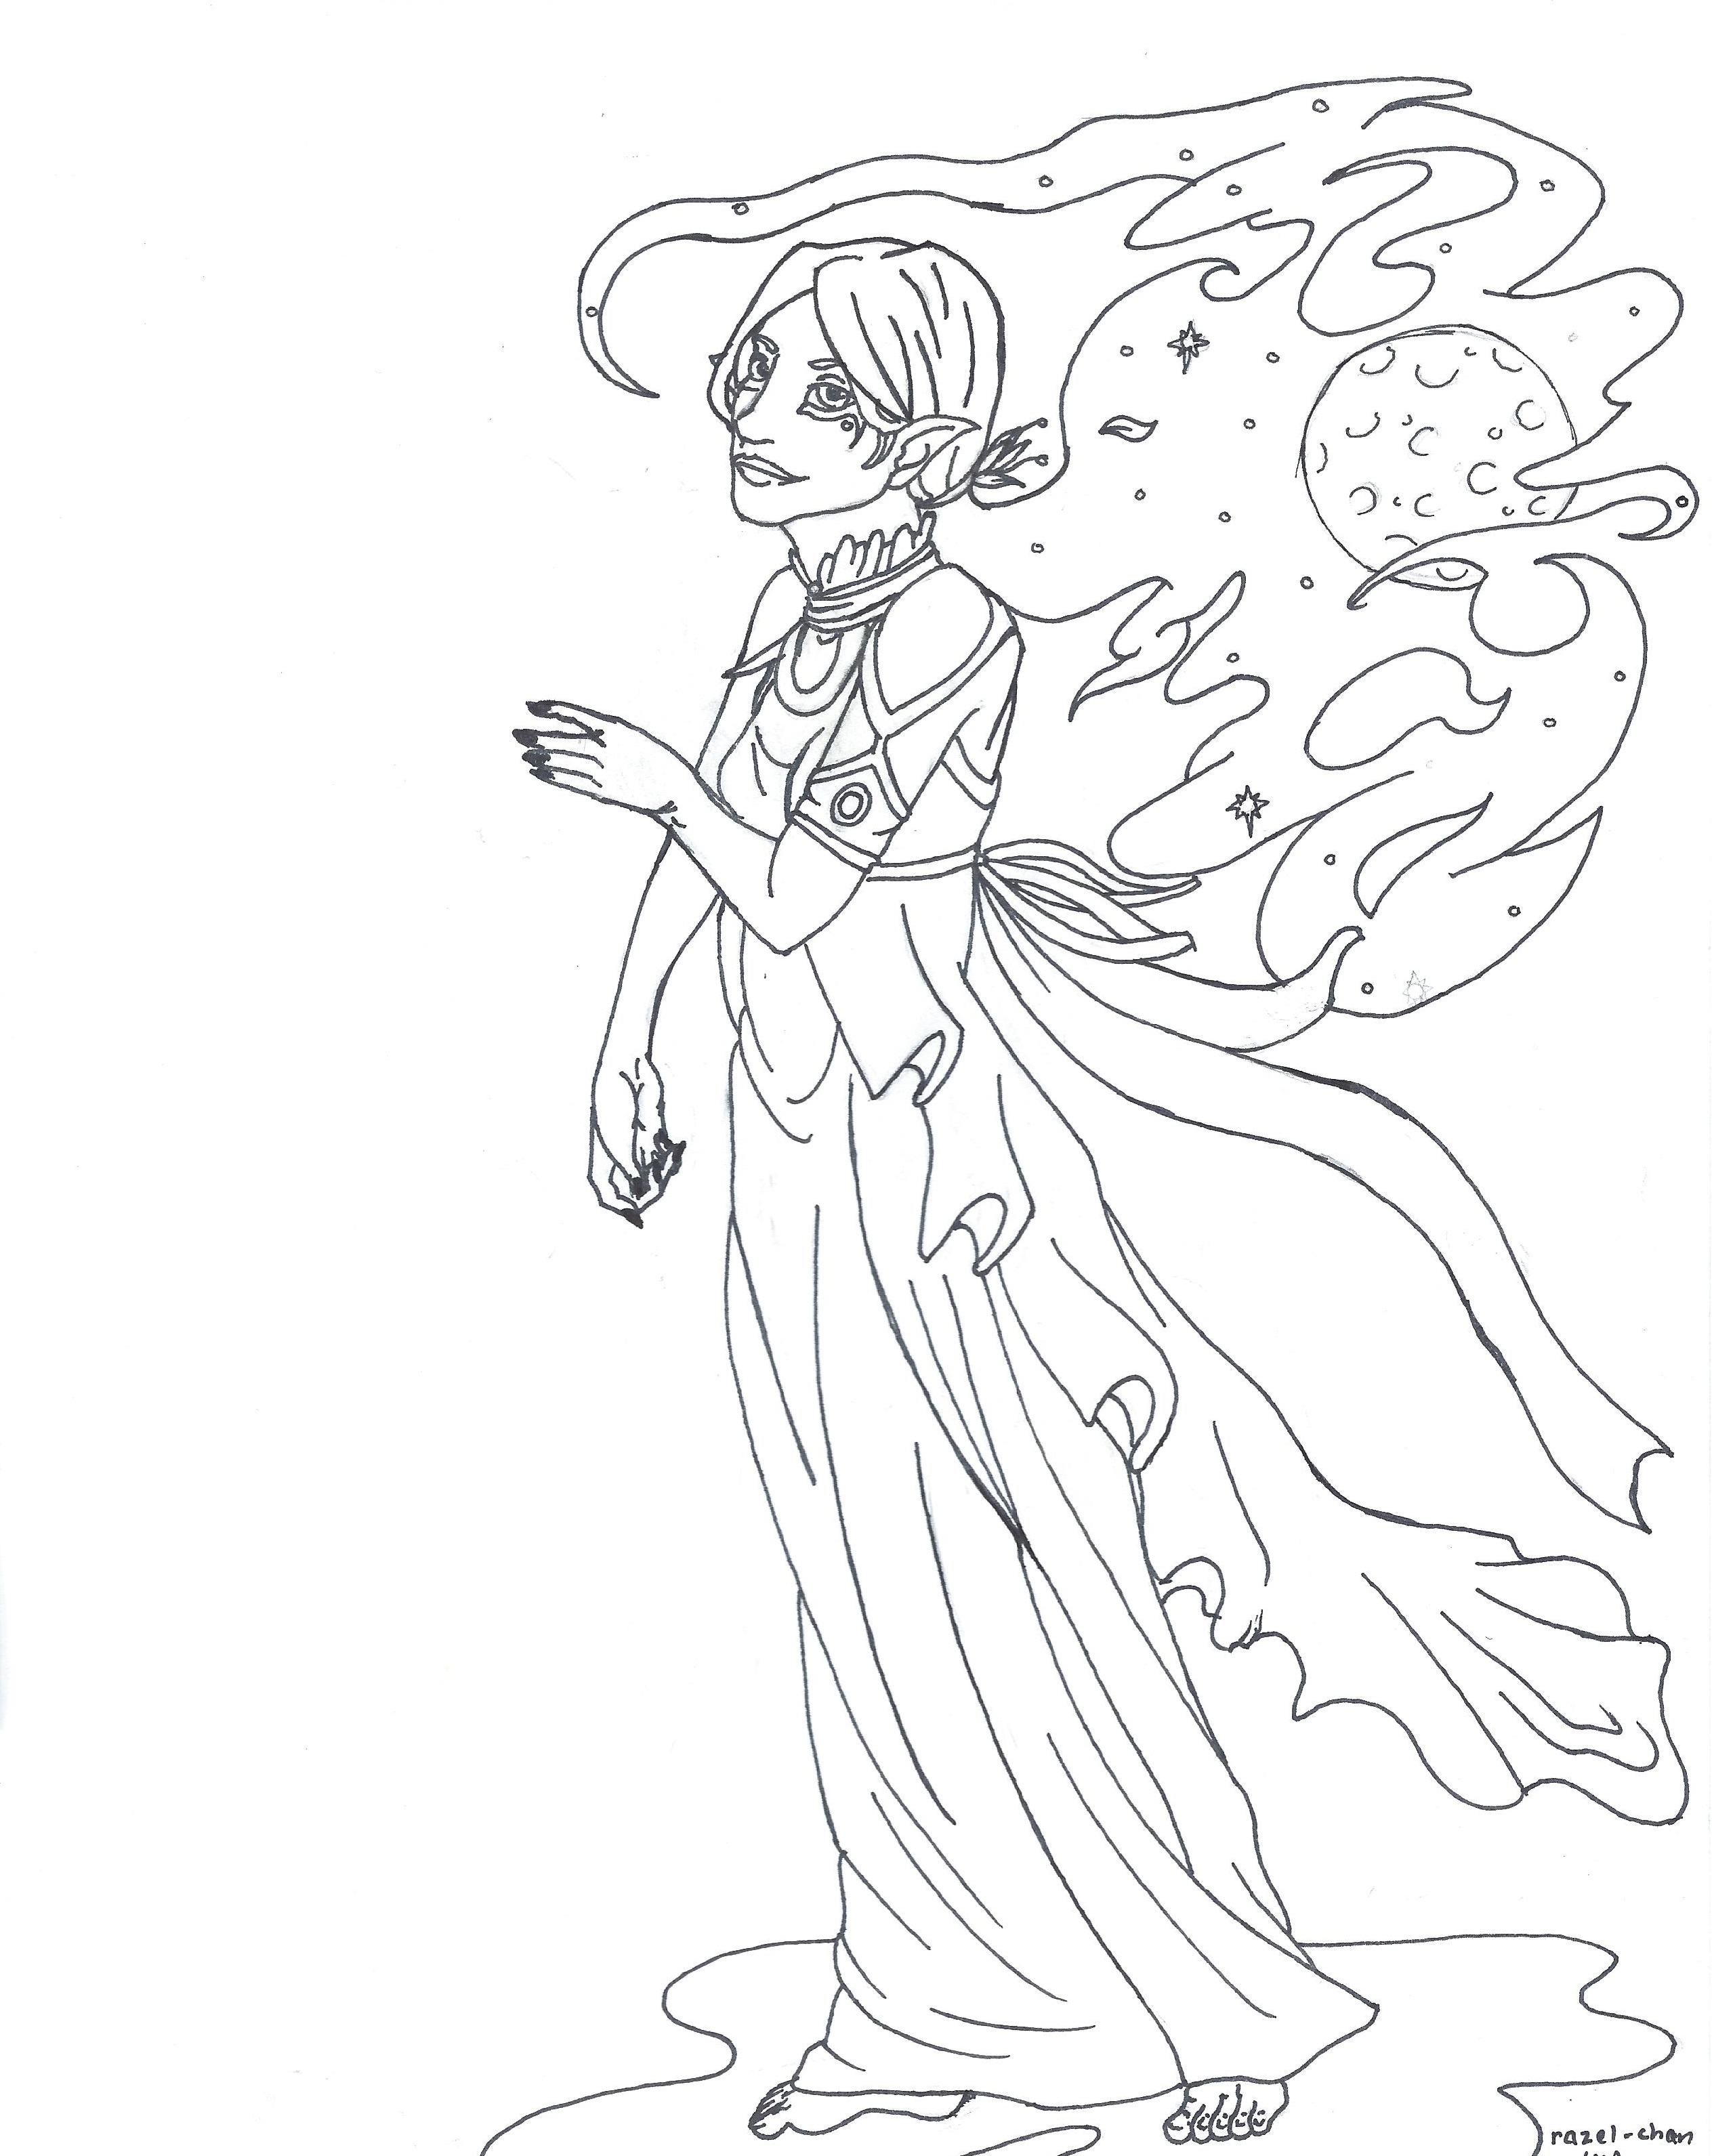 night elf coloring page by razel chan on deviantart